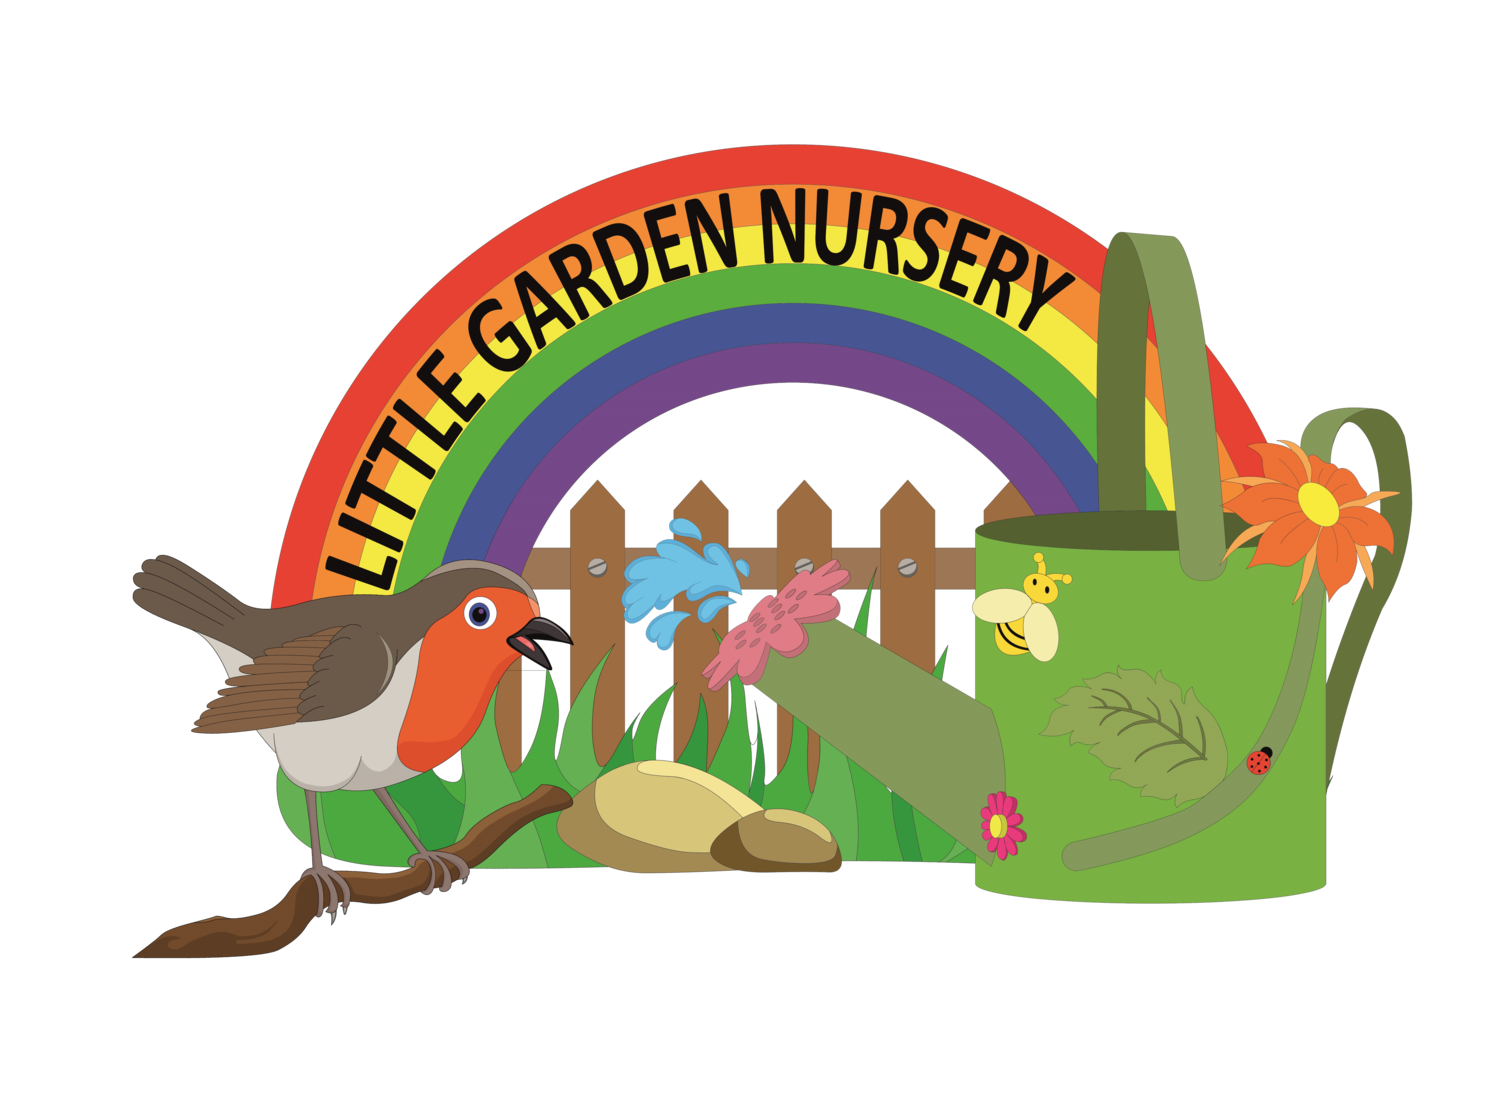 Little Garden Nursery